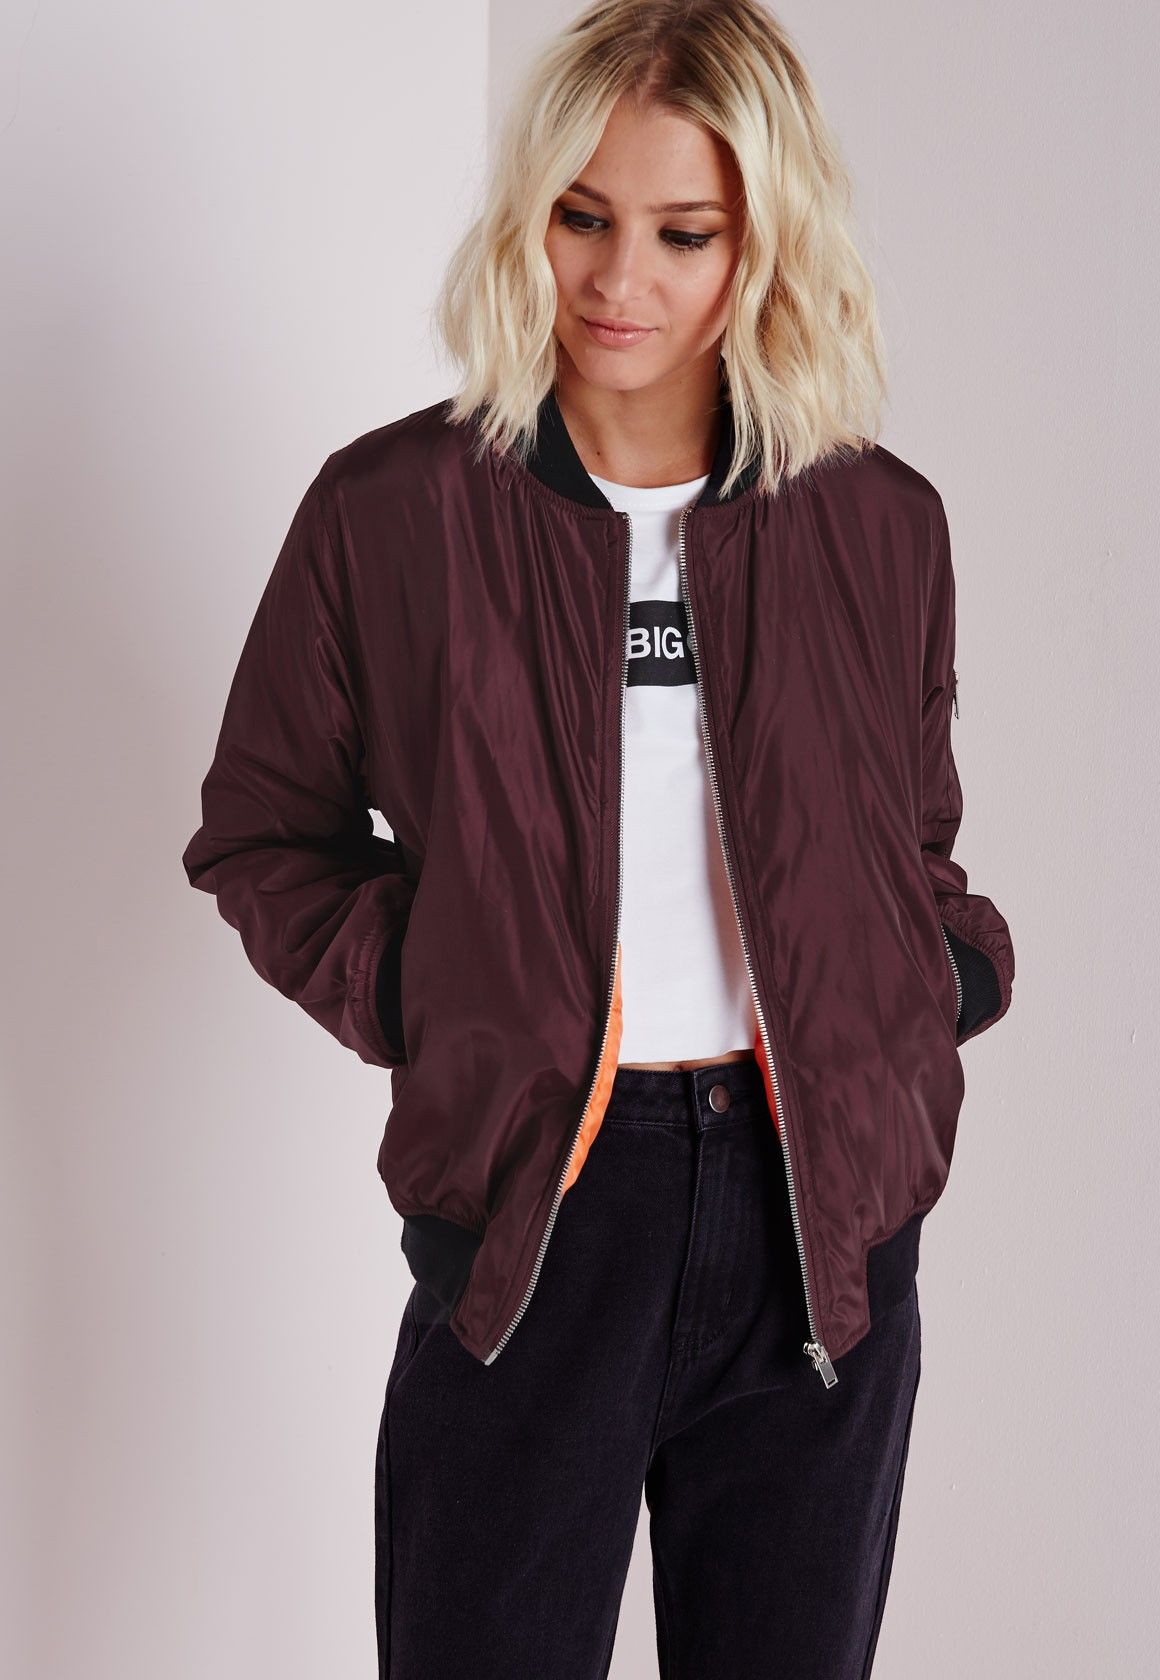 Silky Padded Bomber Jacket Oxblood - Coats & Jackets - Bomber Jackets -  Missguided - Silky Padded Bomber Jacket Oxblood - Coats & Jackets - Bomber